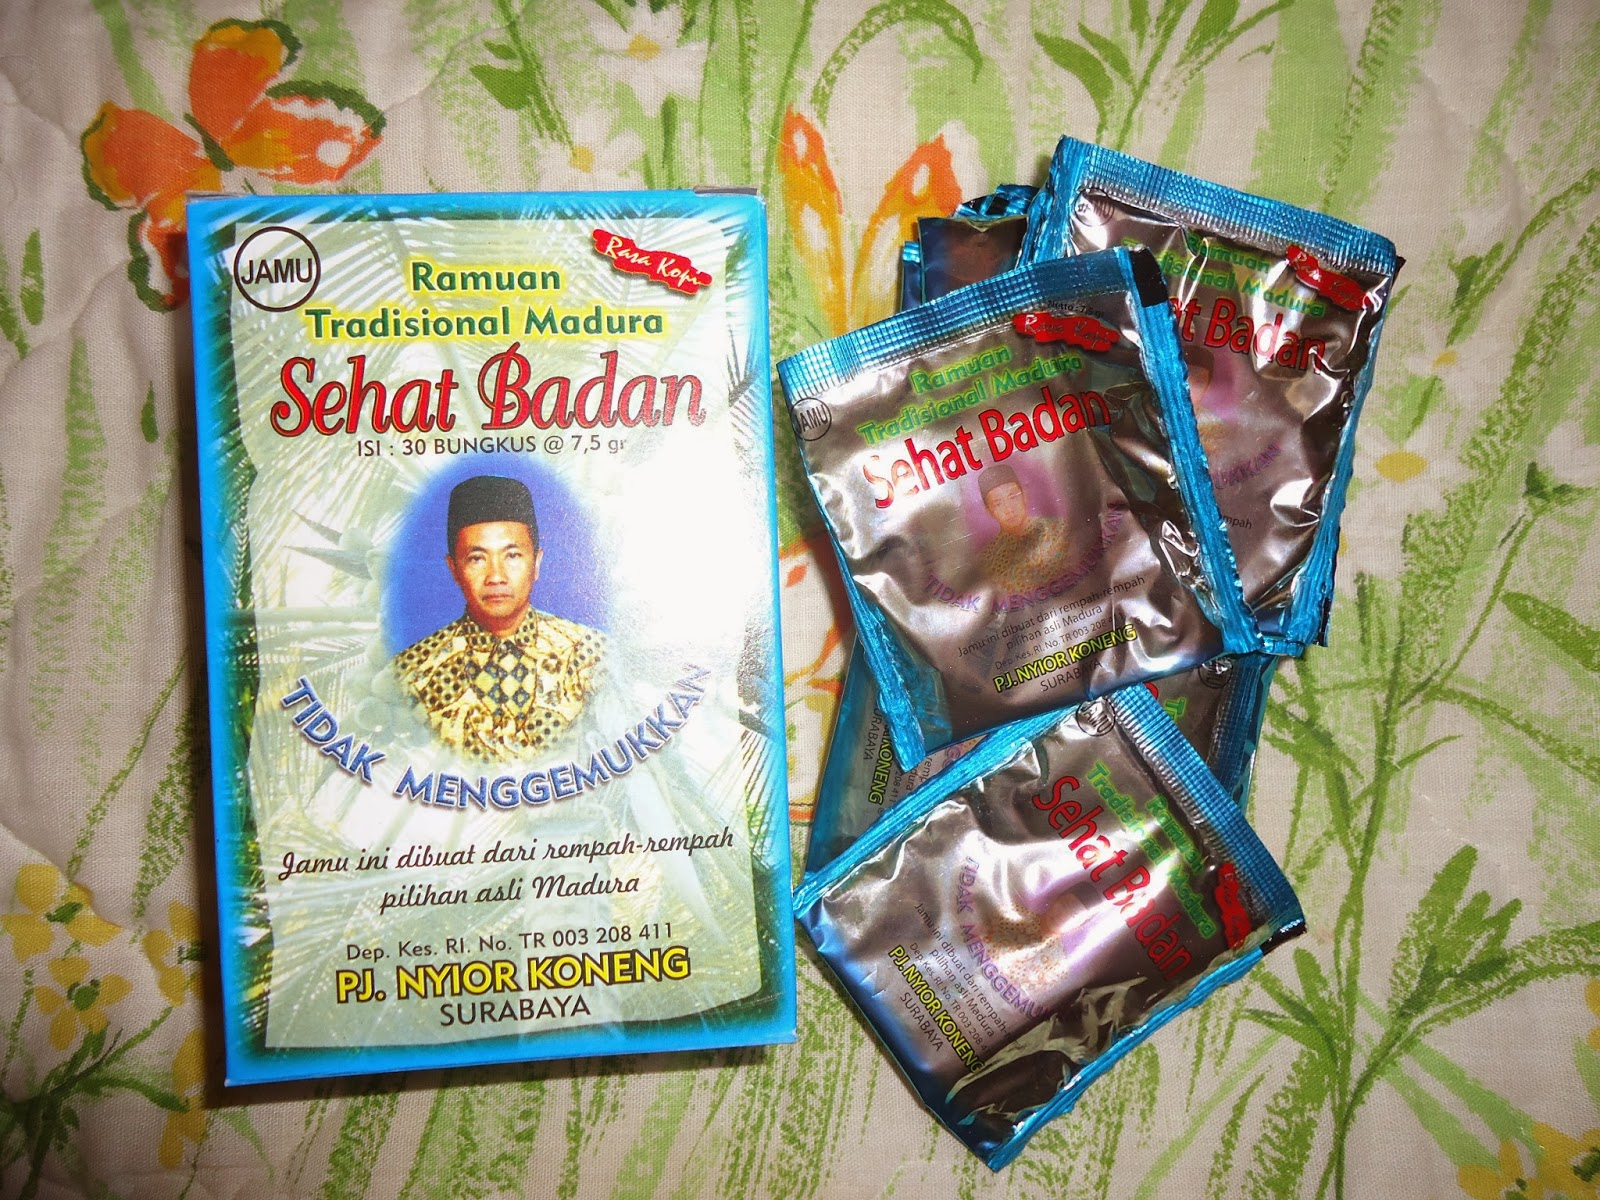 The danger of Sehat badan